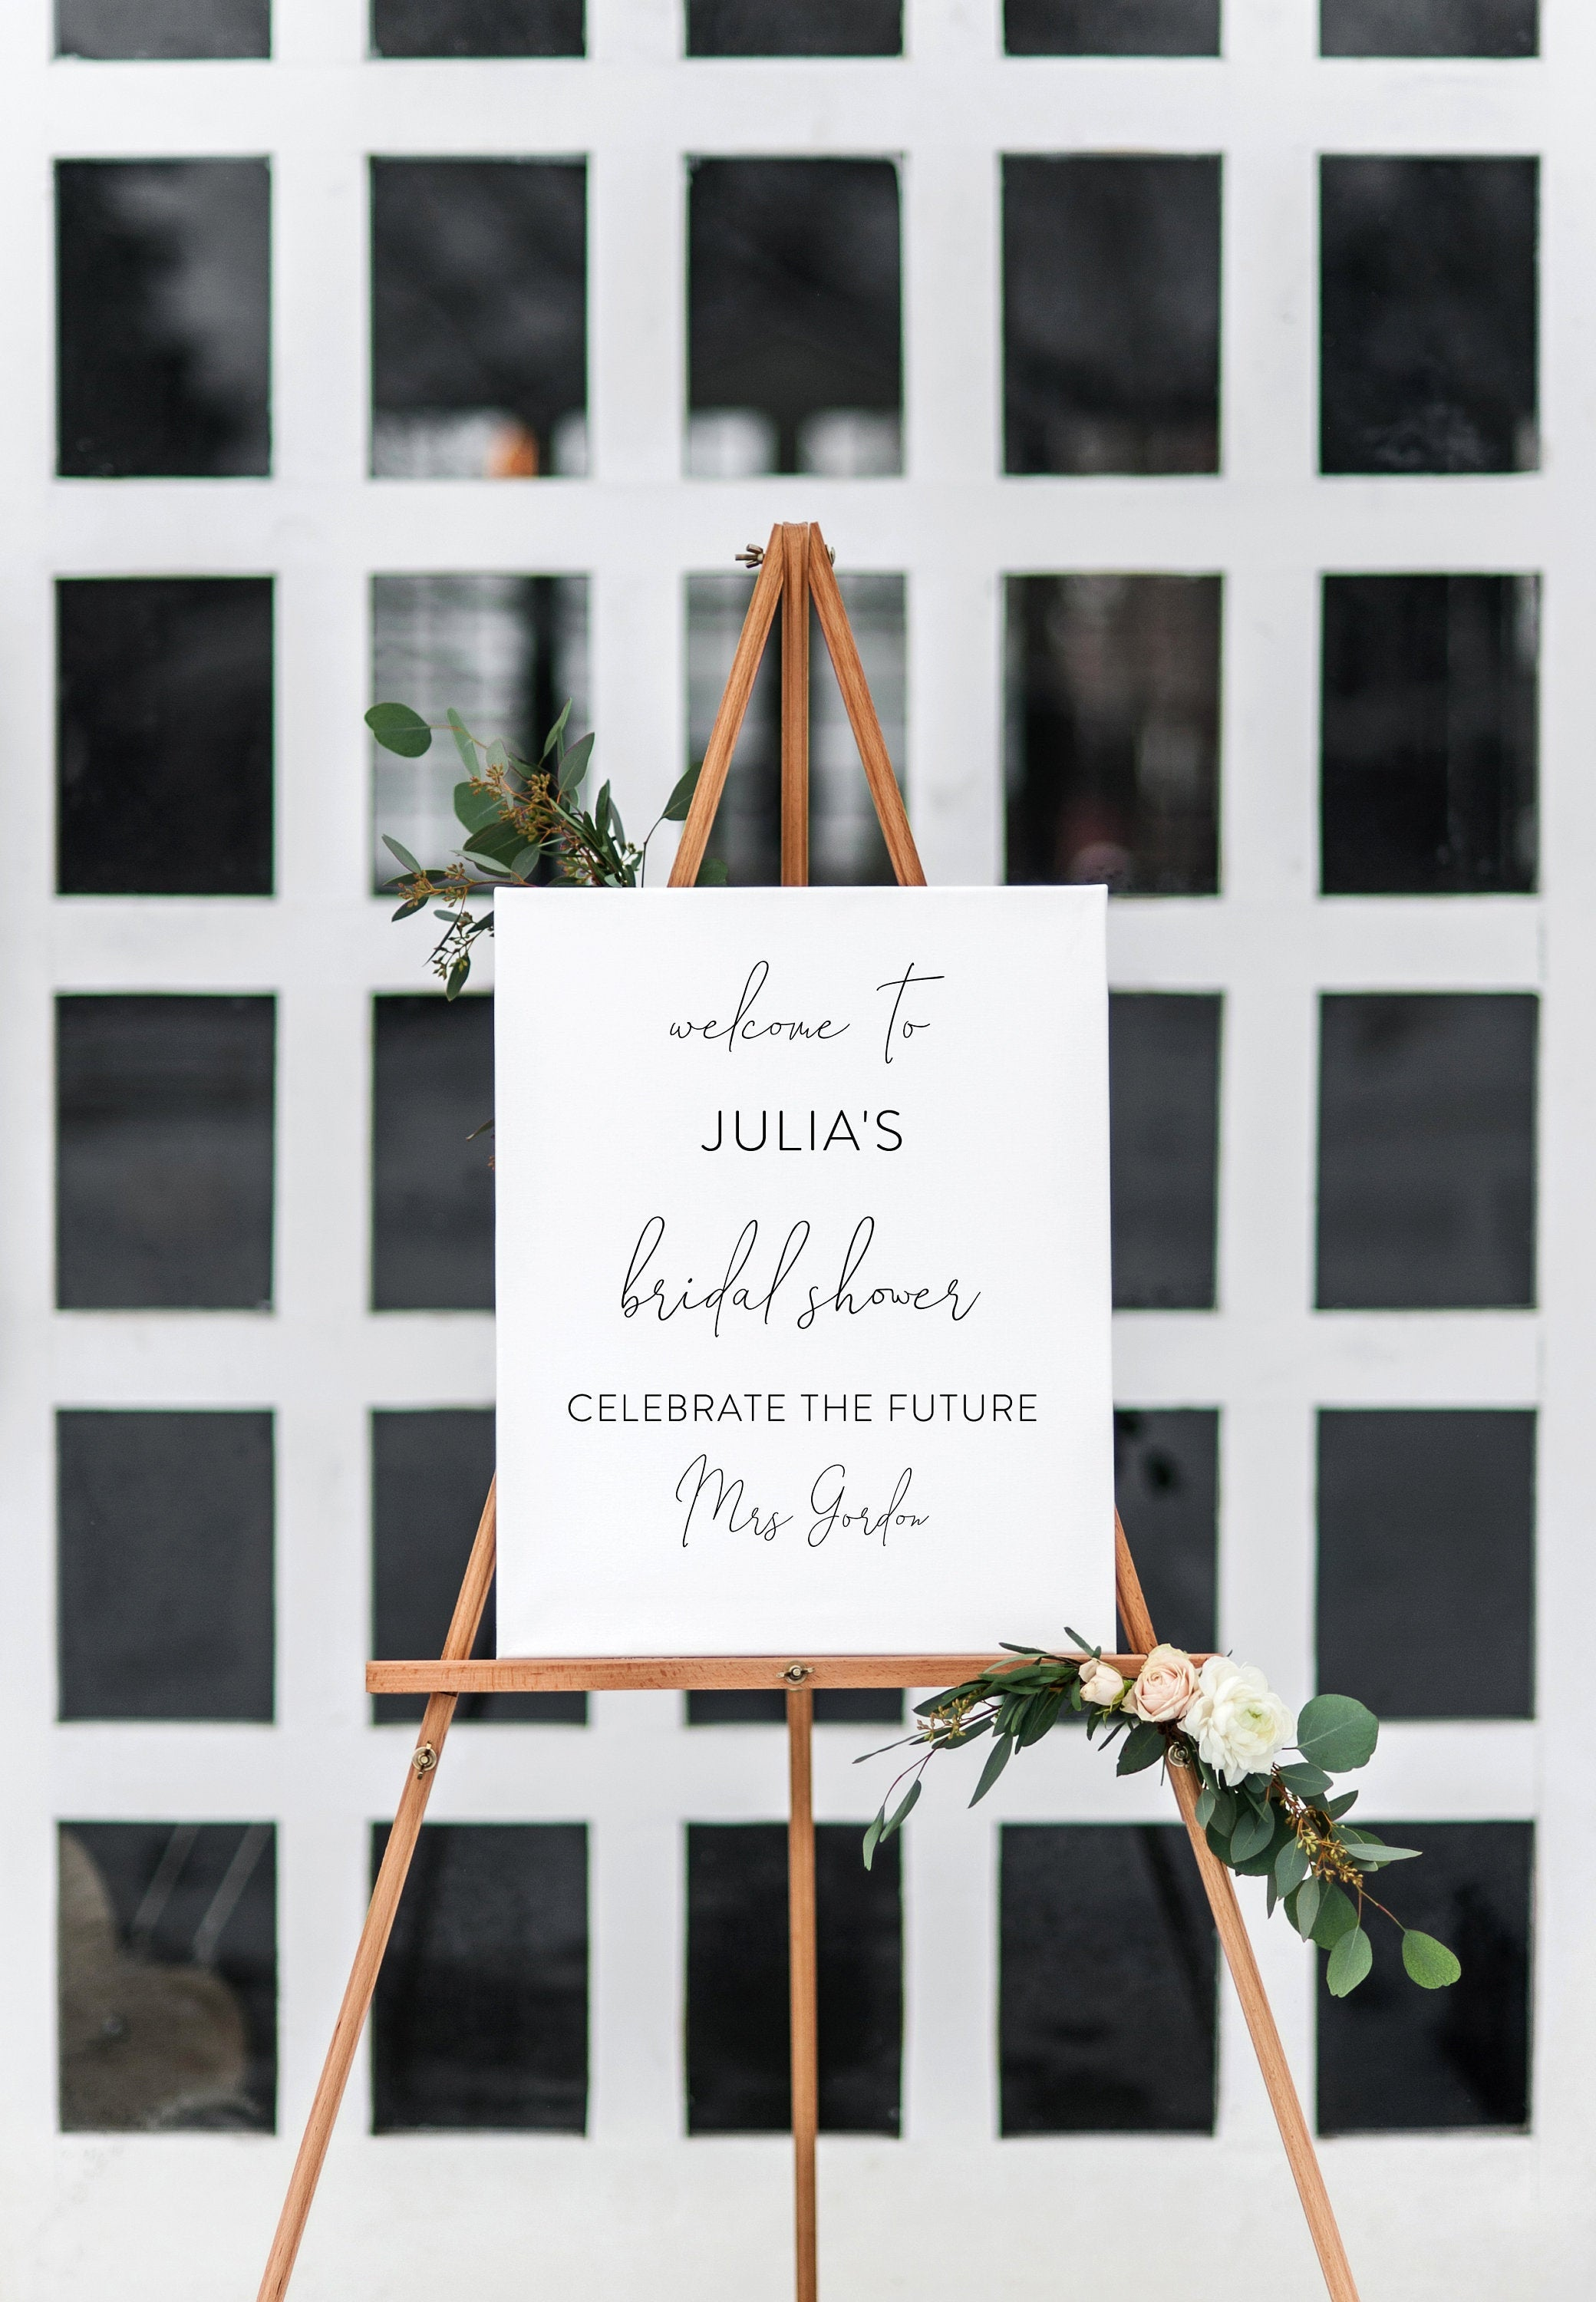 Minimalist Bridal Shower Welcome Sign Template, Instant Download, Editable Wedding Welcome Sign - Julia